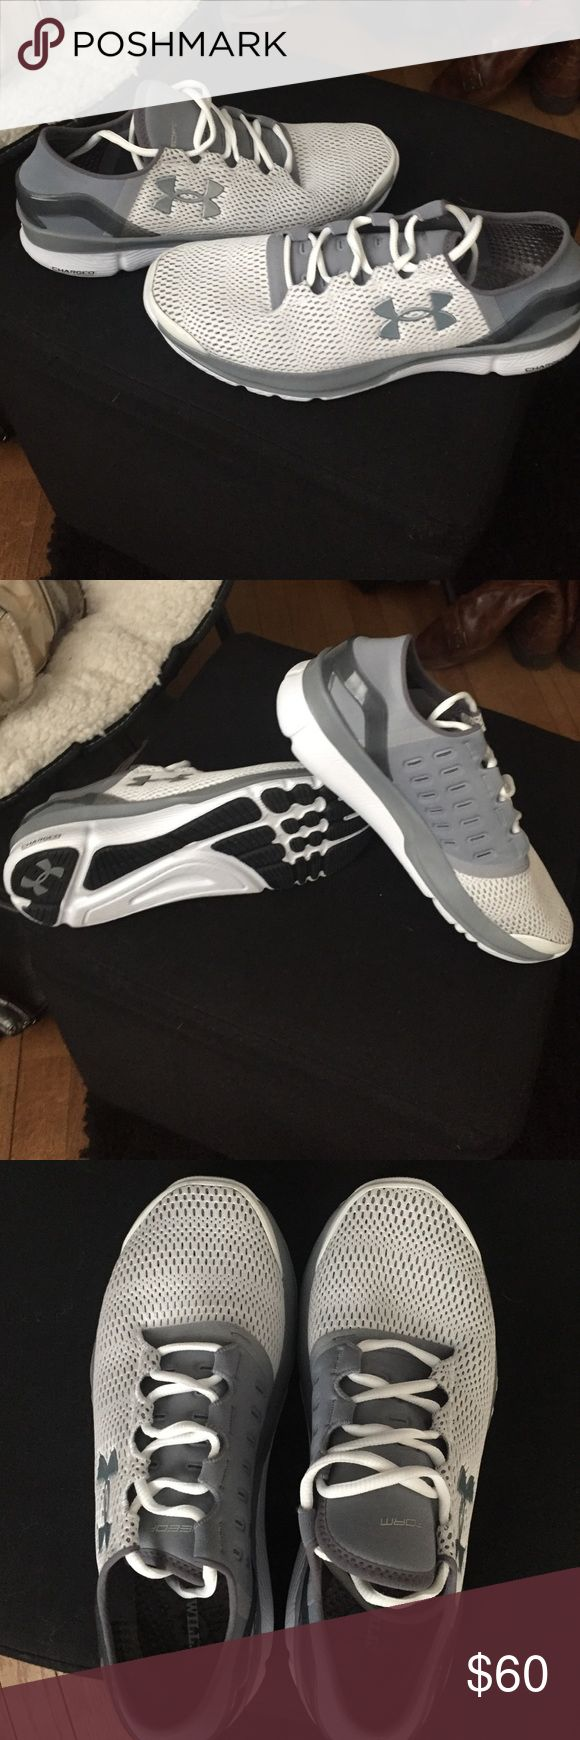 BRAND NEW under armour tennis shoes! White/gray women's running shoe. Very comfy, just never wore because they're a little snug! Under Armour Shoes Sneakers